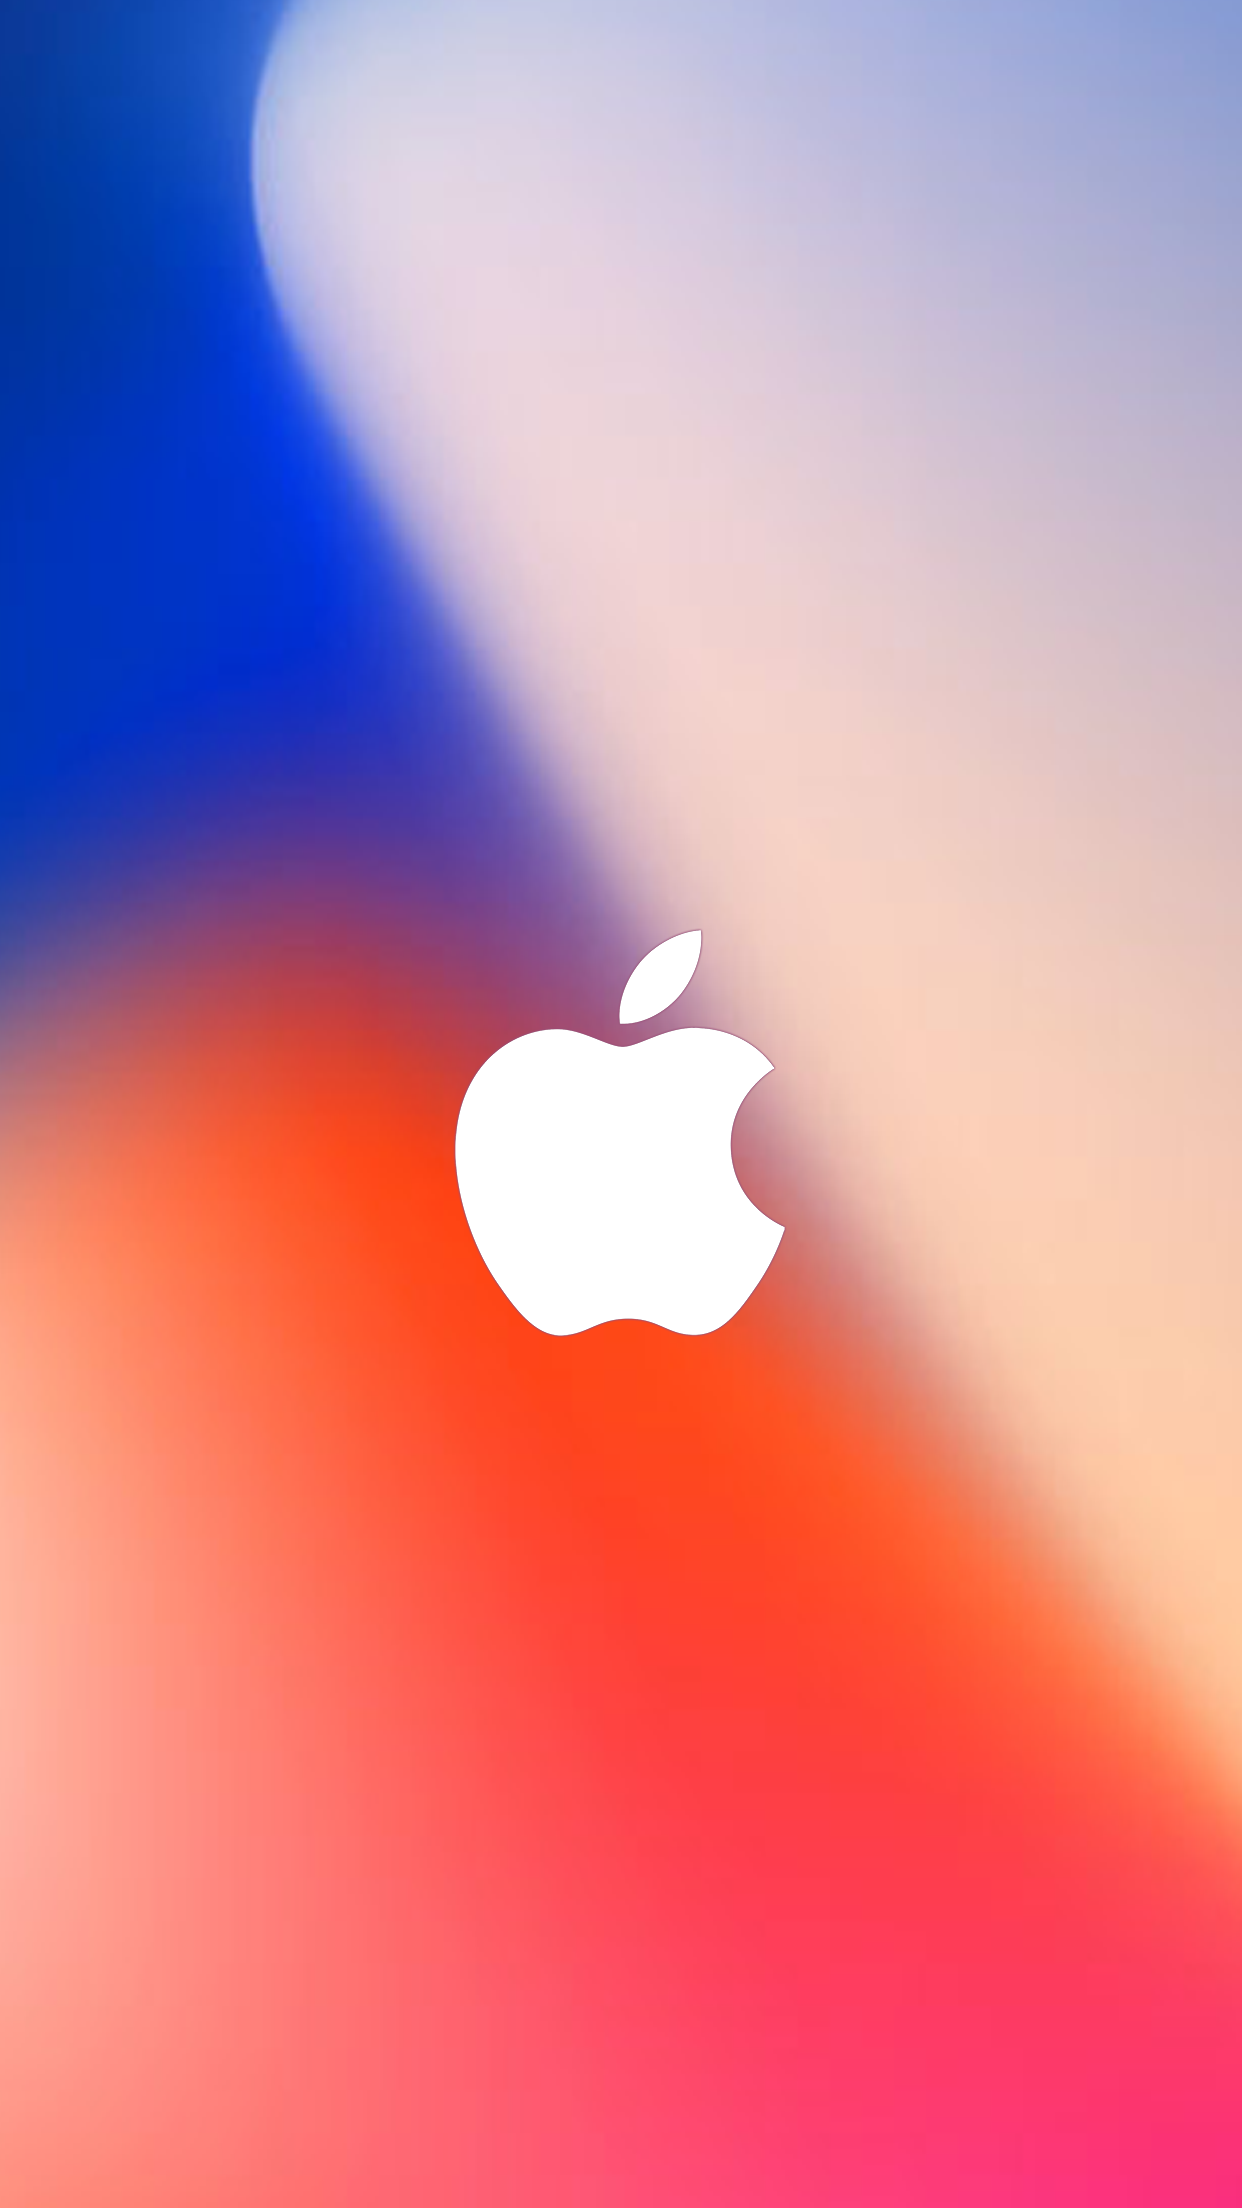 Iphone iphone 8 event wallpapers free apple papers iphone iphone 8 event wallpapers voltagebd Image collections